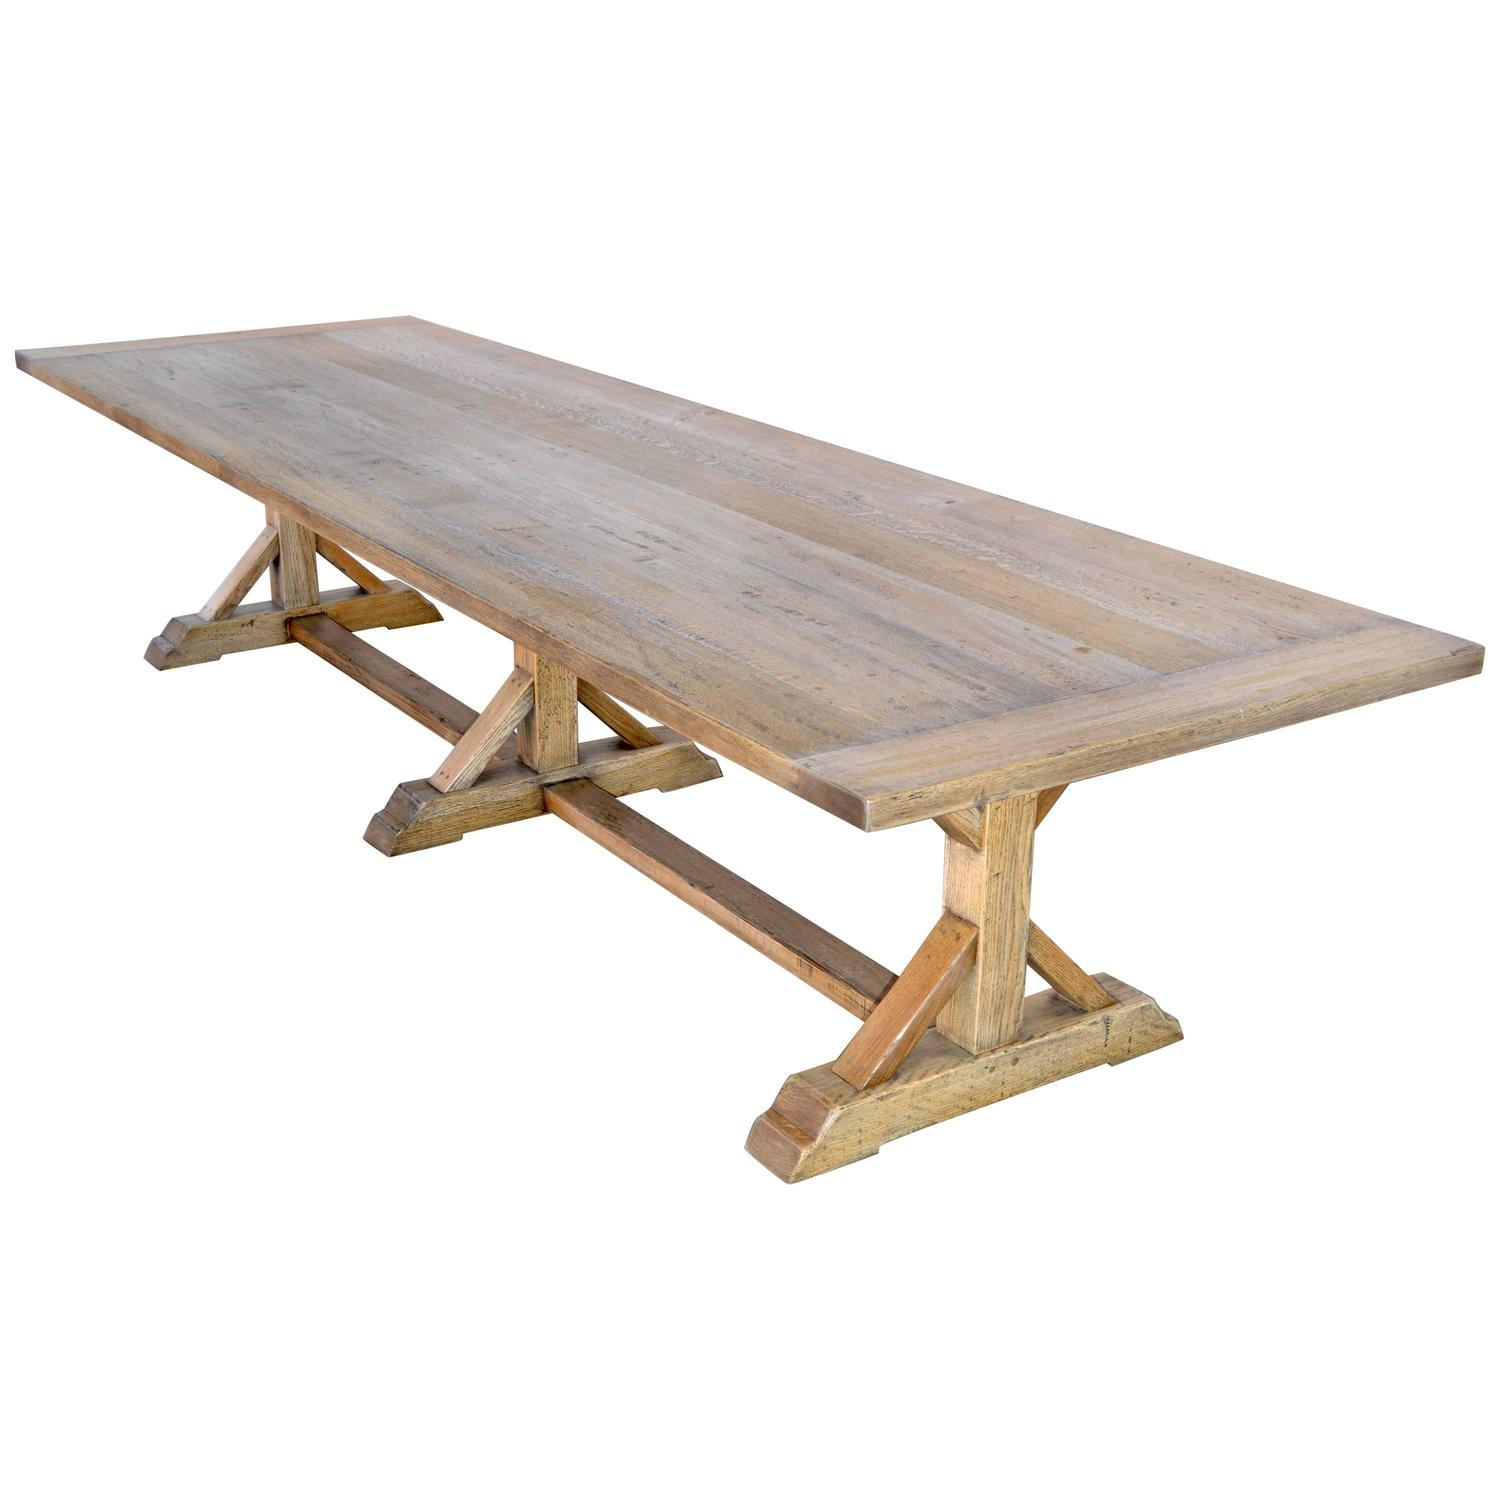 Vintage Oak Farm Table For Sale at 1stdibs : ORG2861192z from www.1stdibs.com size 1500 x 1500 jpeg 85kB